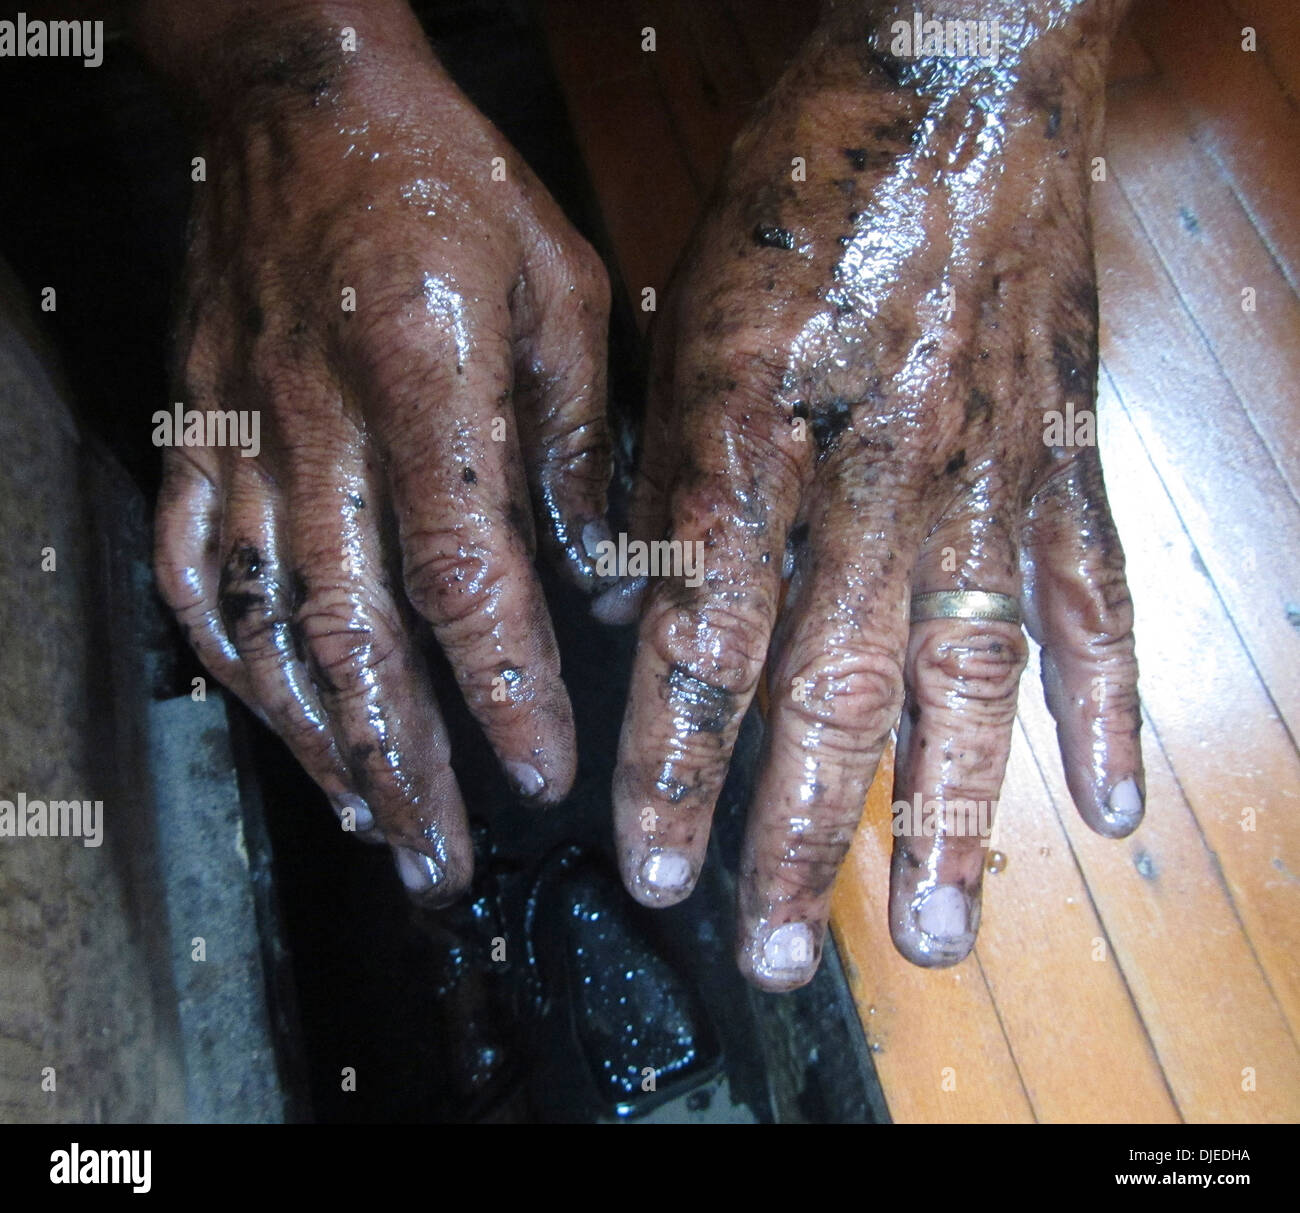 Dirty, oily hands that have been in the bilge of a boat leaking oil. - Stock Image